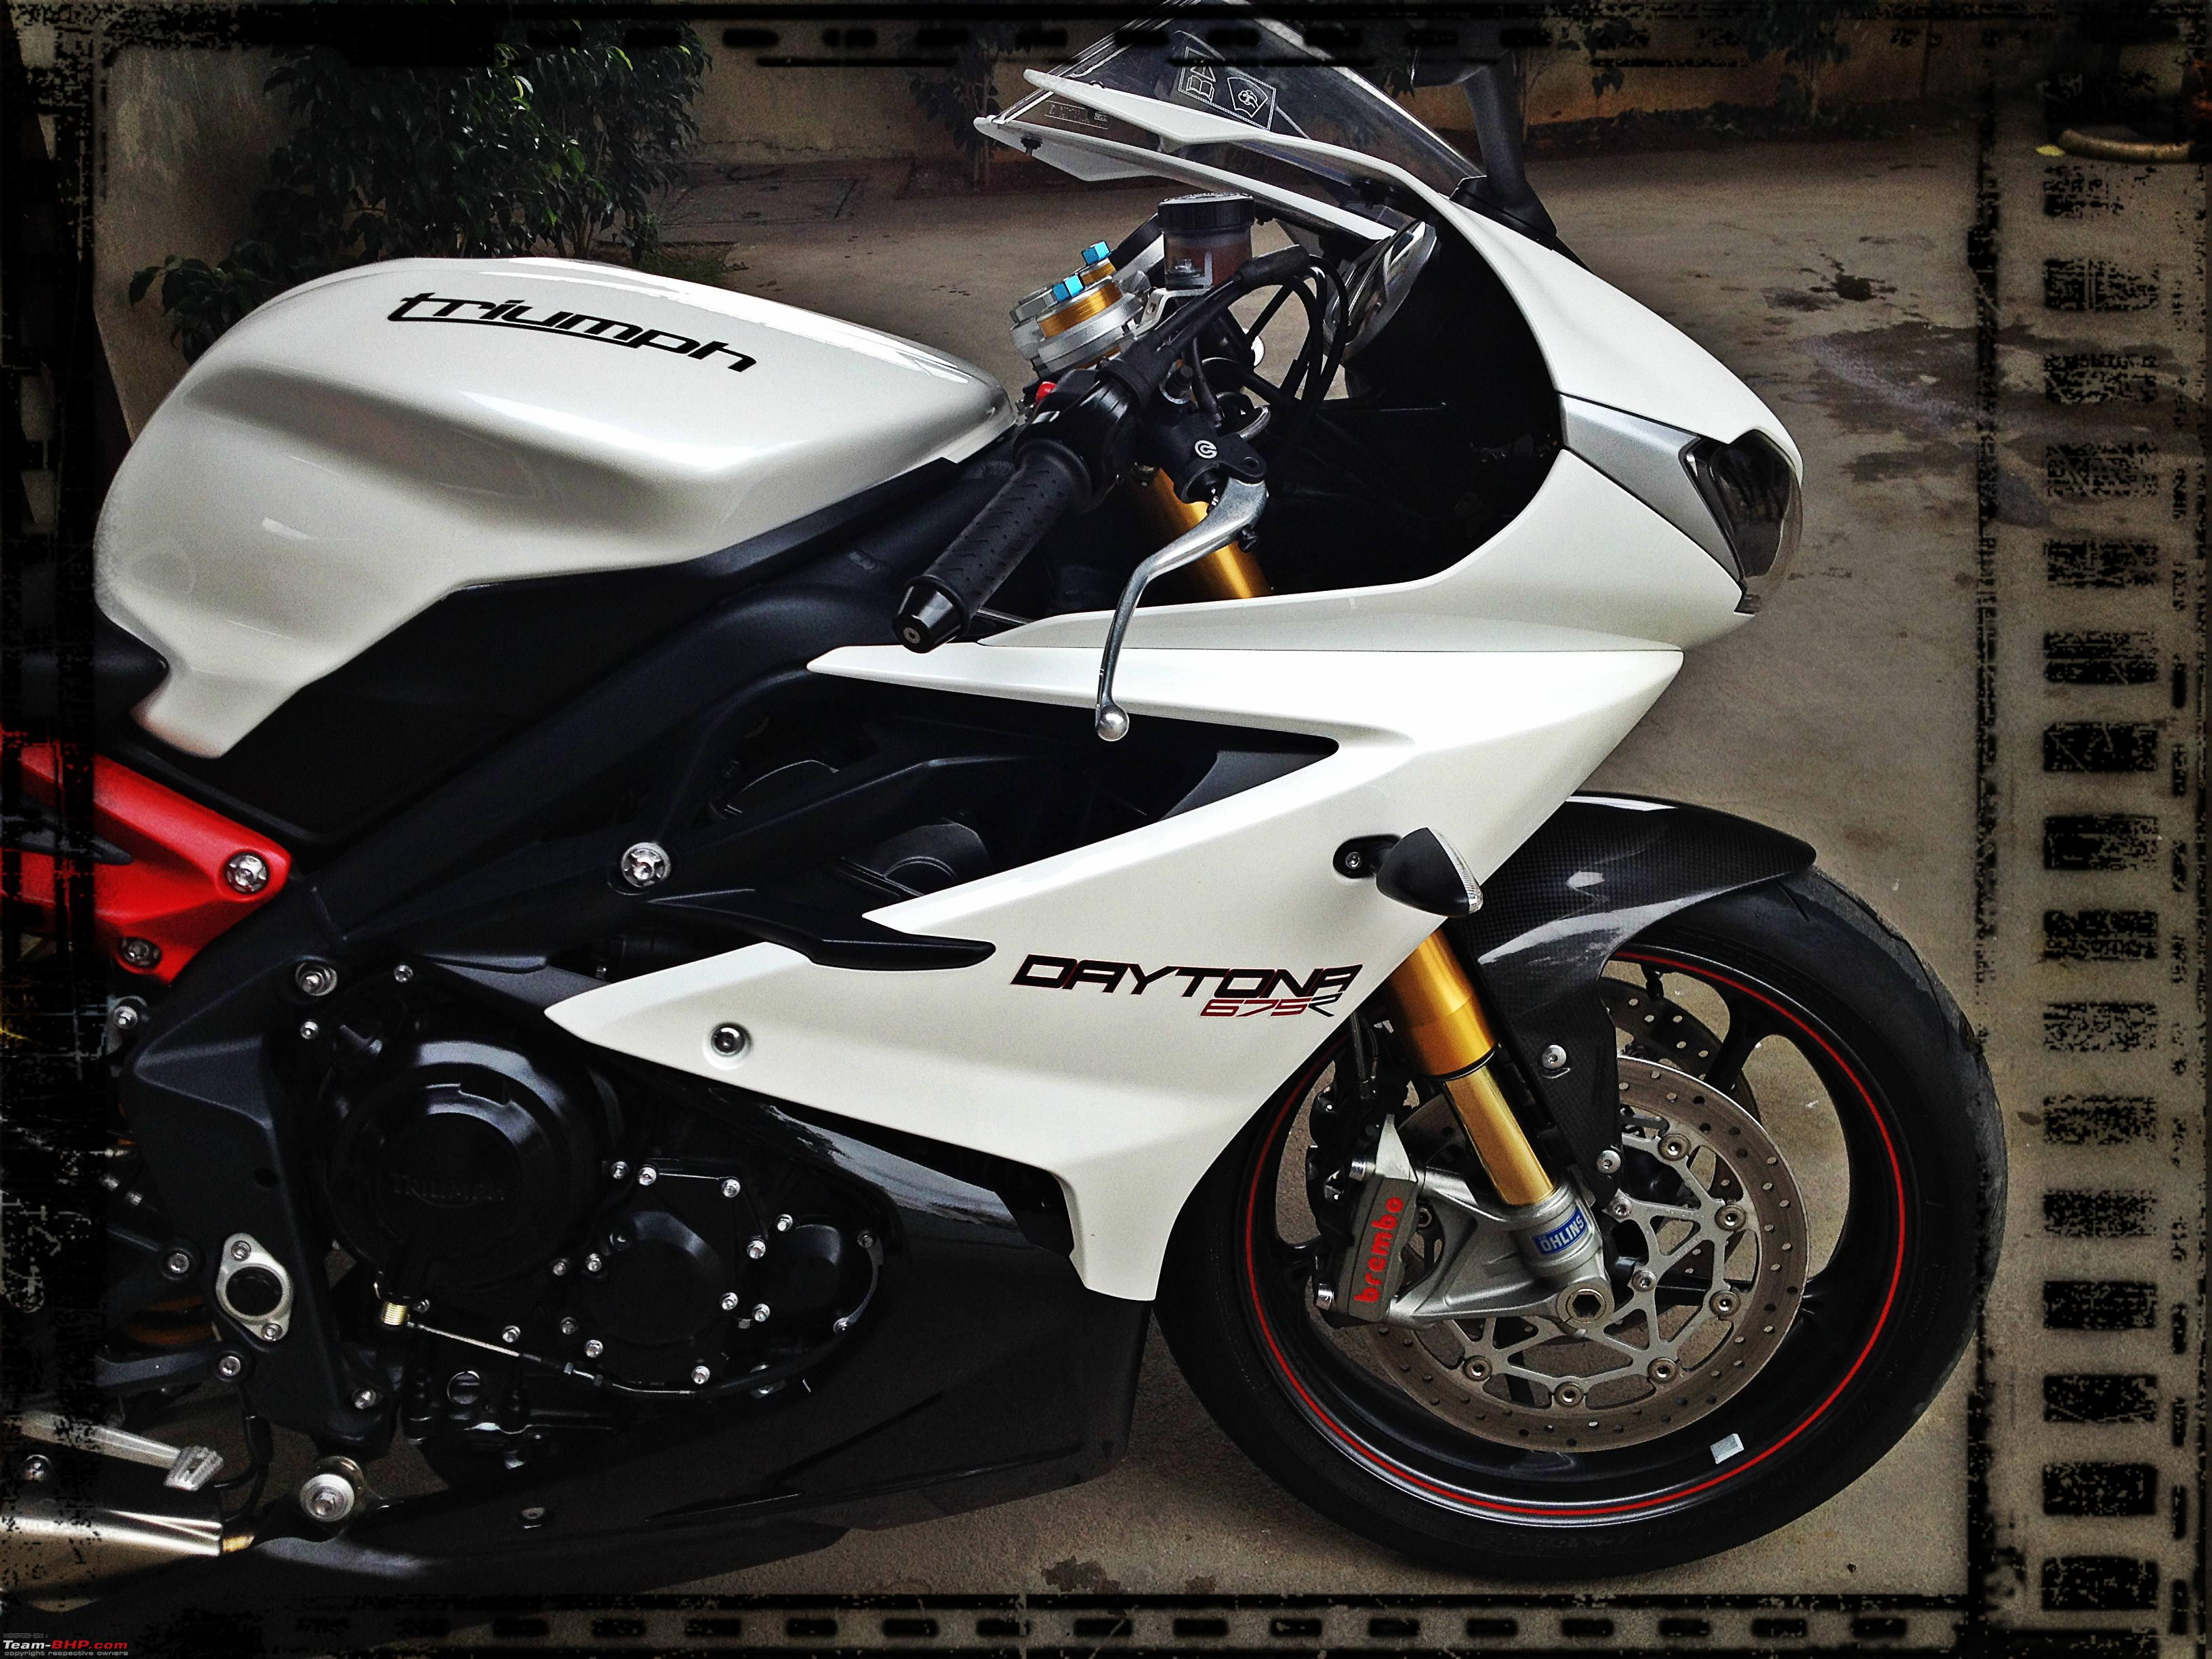 Triumph Daytona 675r A True Everyday Superbike Team Bhp